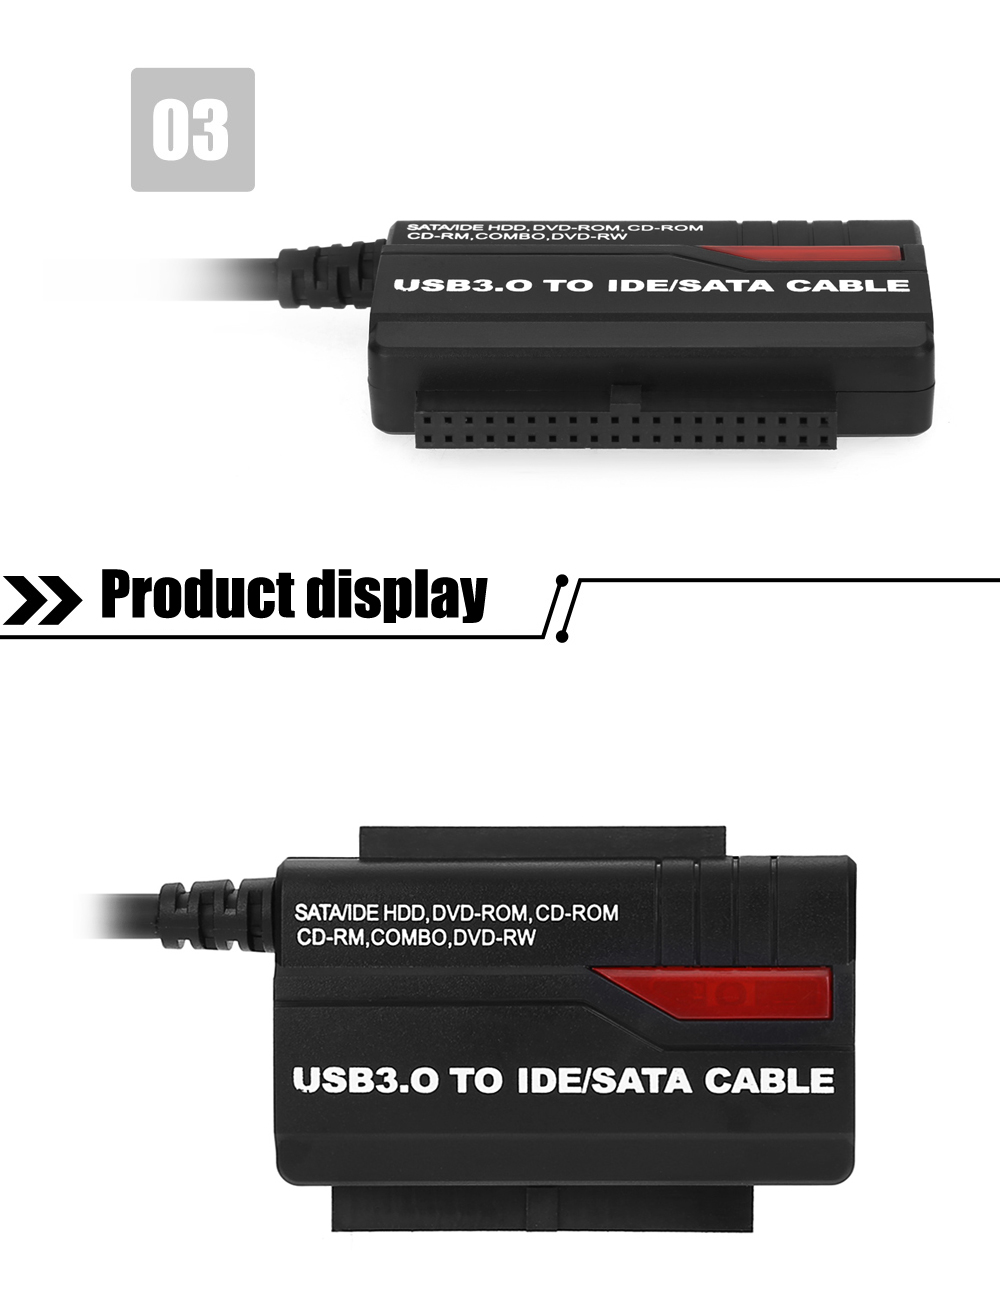 891U3 USB 3.0 to 2.5 / 3.5 inch IDE / SATA HDD Adapter for Desktop PC / Notebook